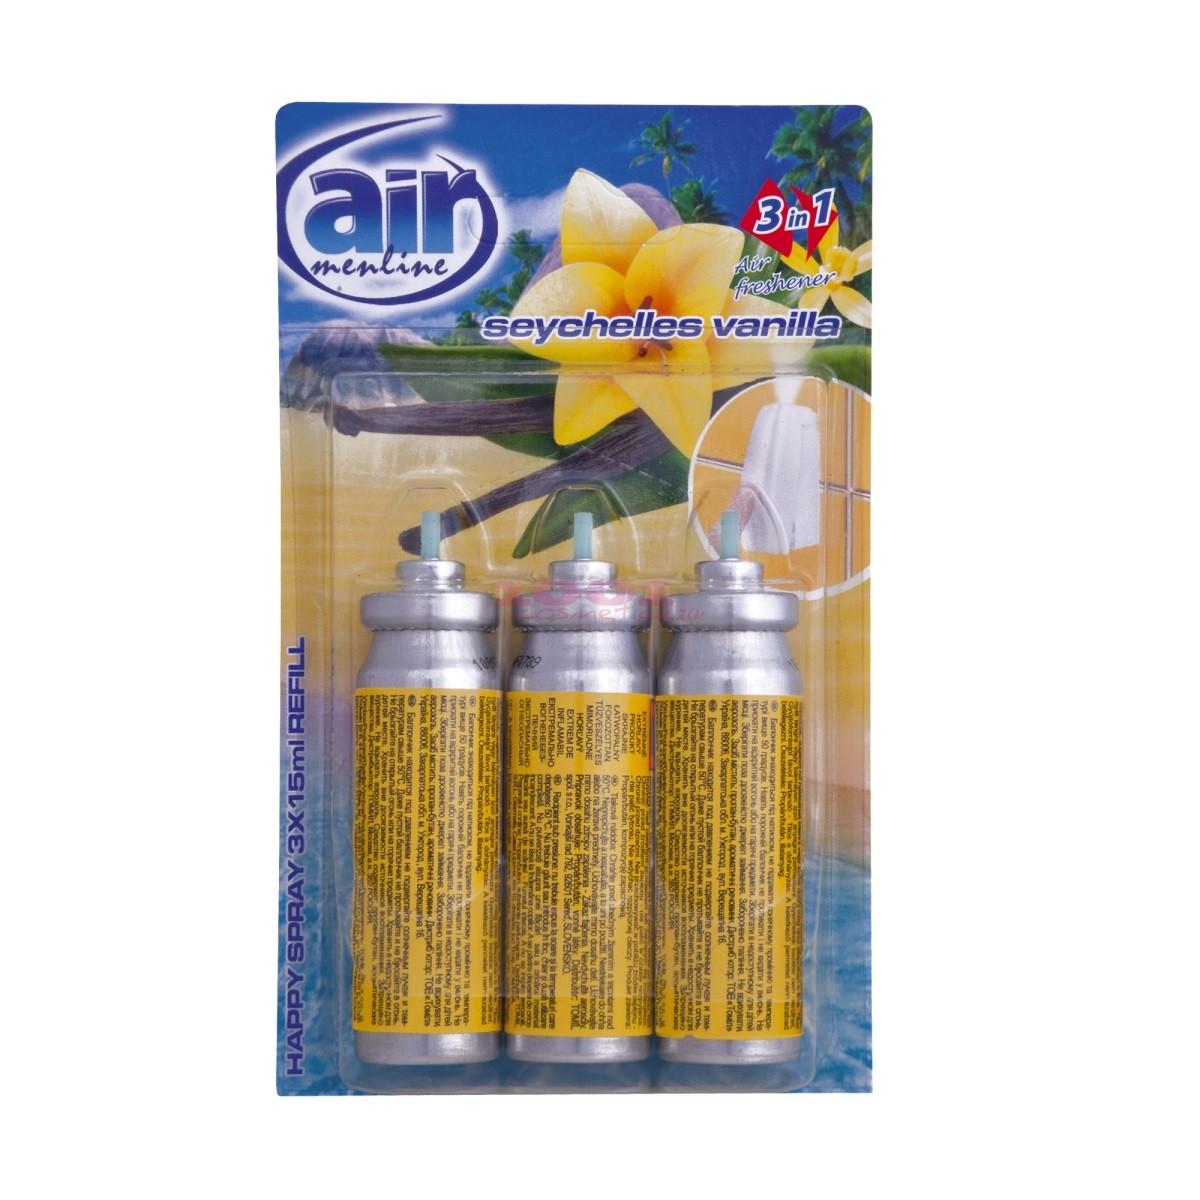 AIR MENLINE 3IN1 SPRAY REZERVA SET 3 BUCATI SEYCHELLES VANILLA